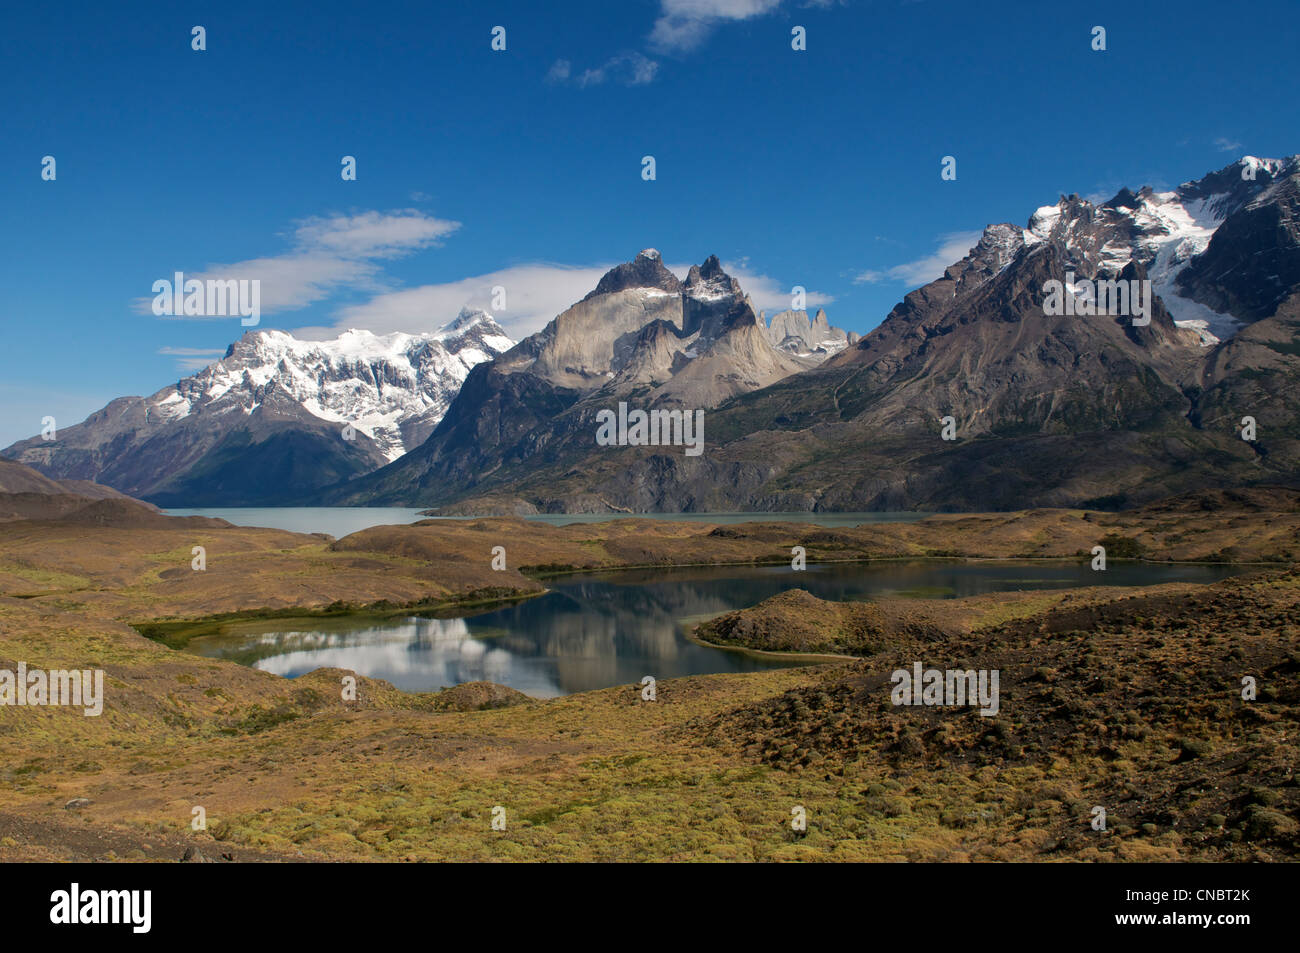 Lago Nordenskjold Torres del Paine National Park Patagonia Chile - Stock Image